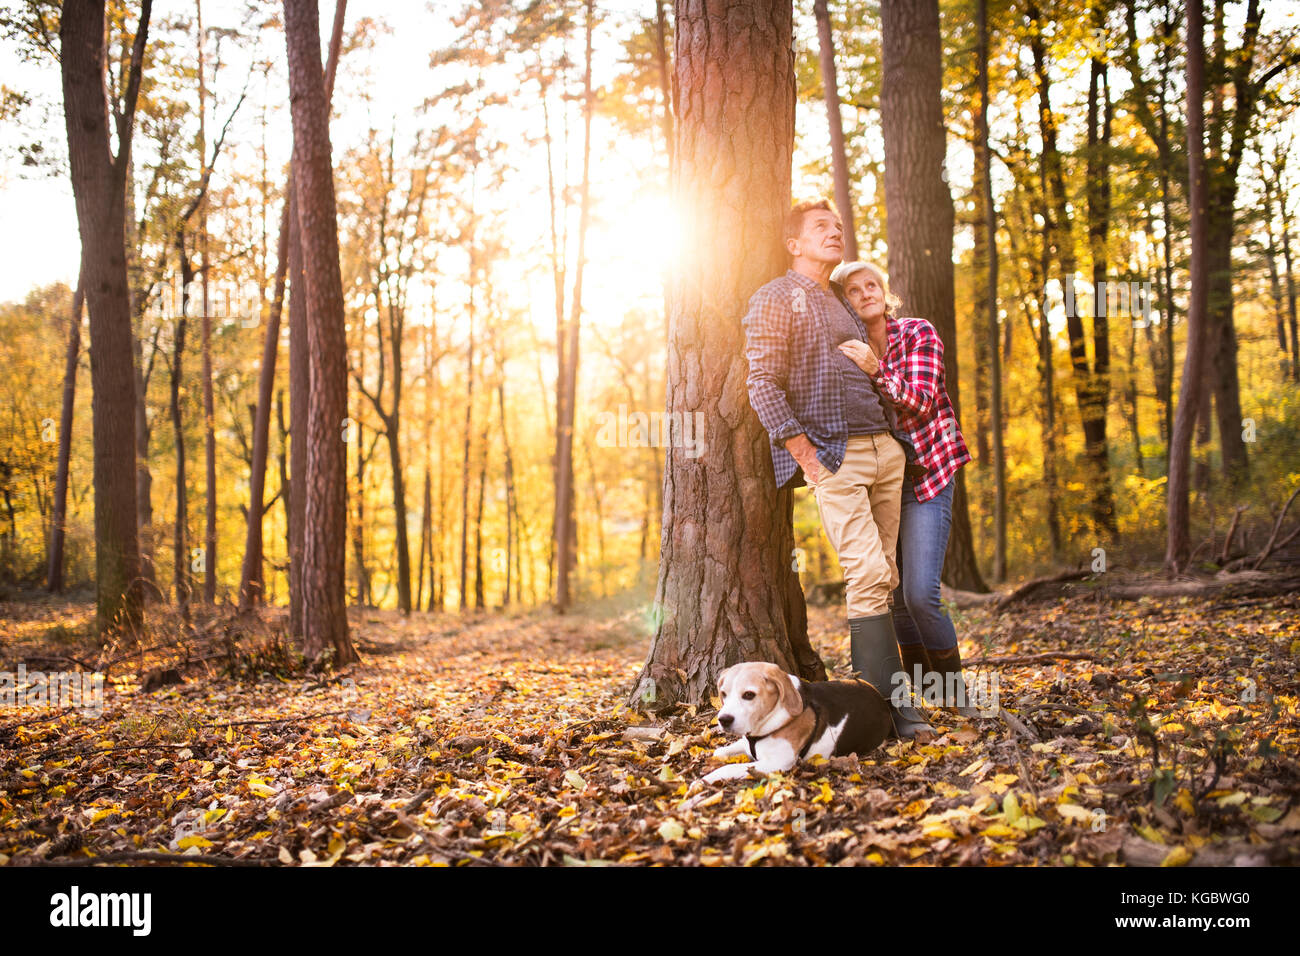 Senior couple with dog on a walk in an autumn forest. - Stock Image